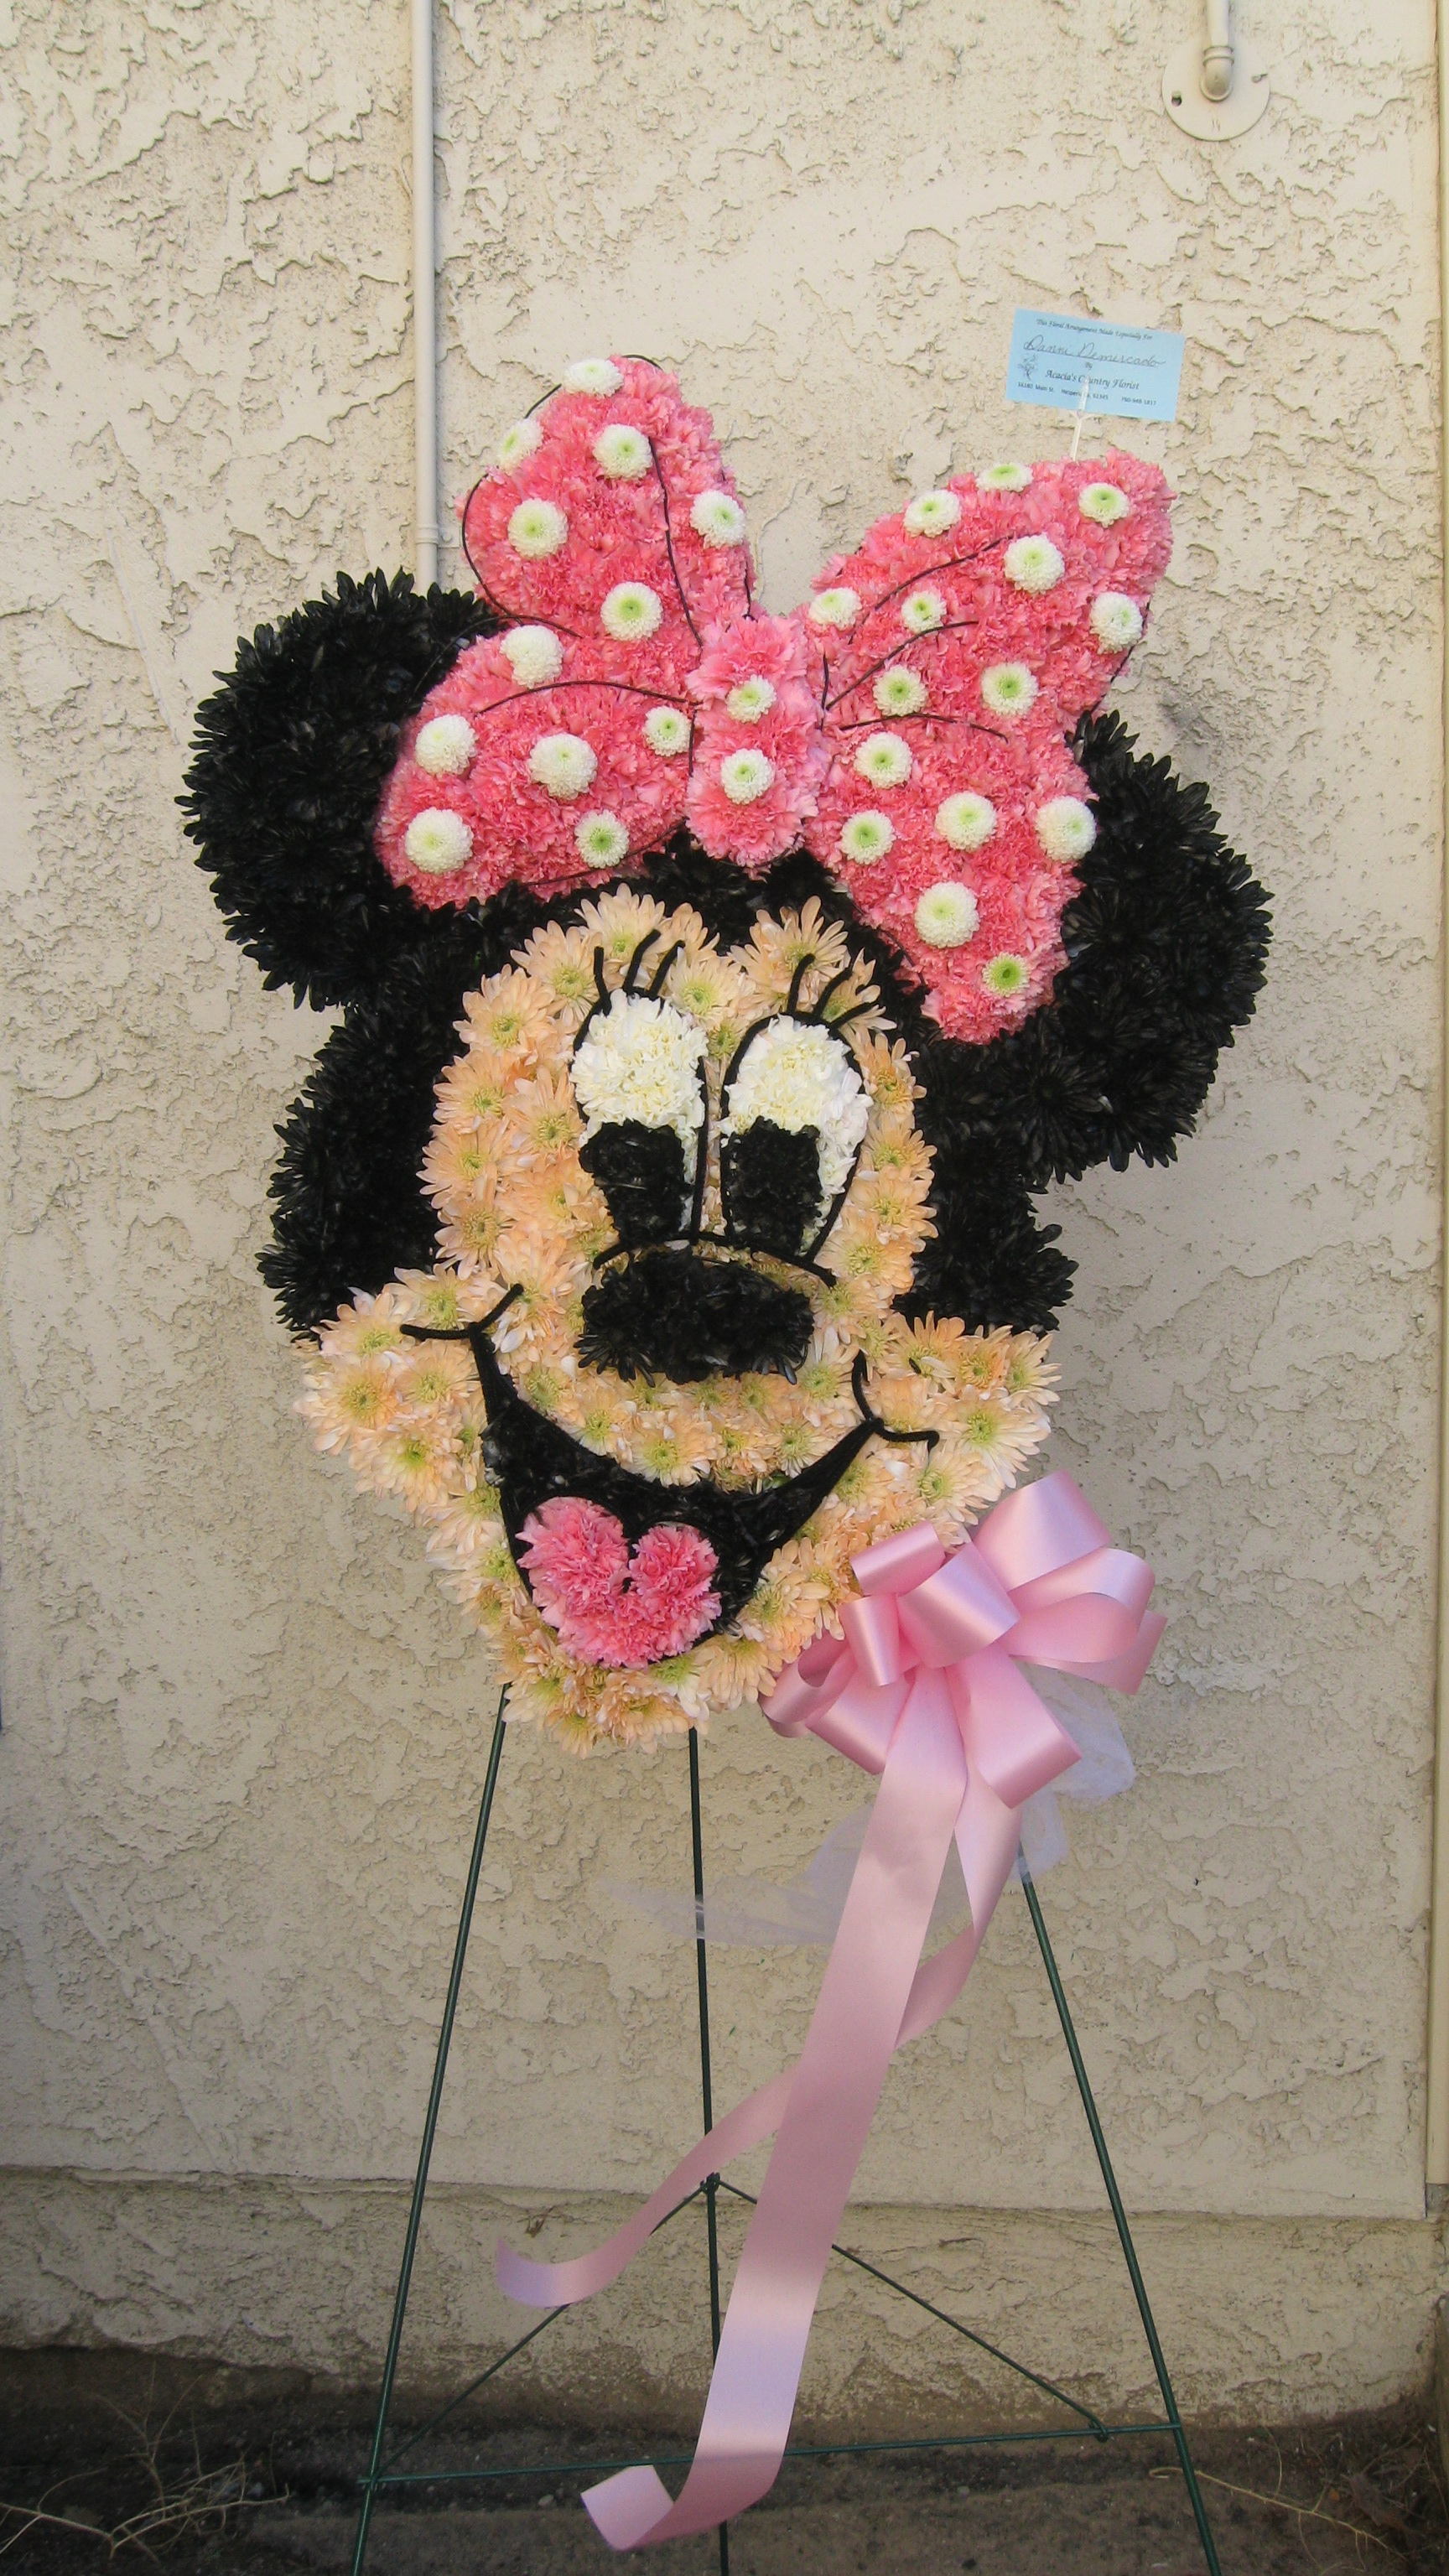 Personalized creative funeral flowers attached image minnie mouse for danni 12 28 2010 4g izmirmasajfo Gallery